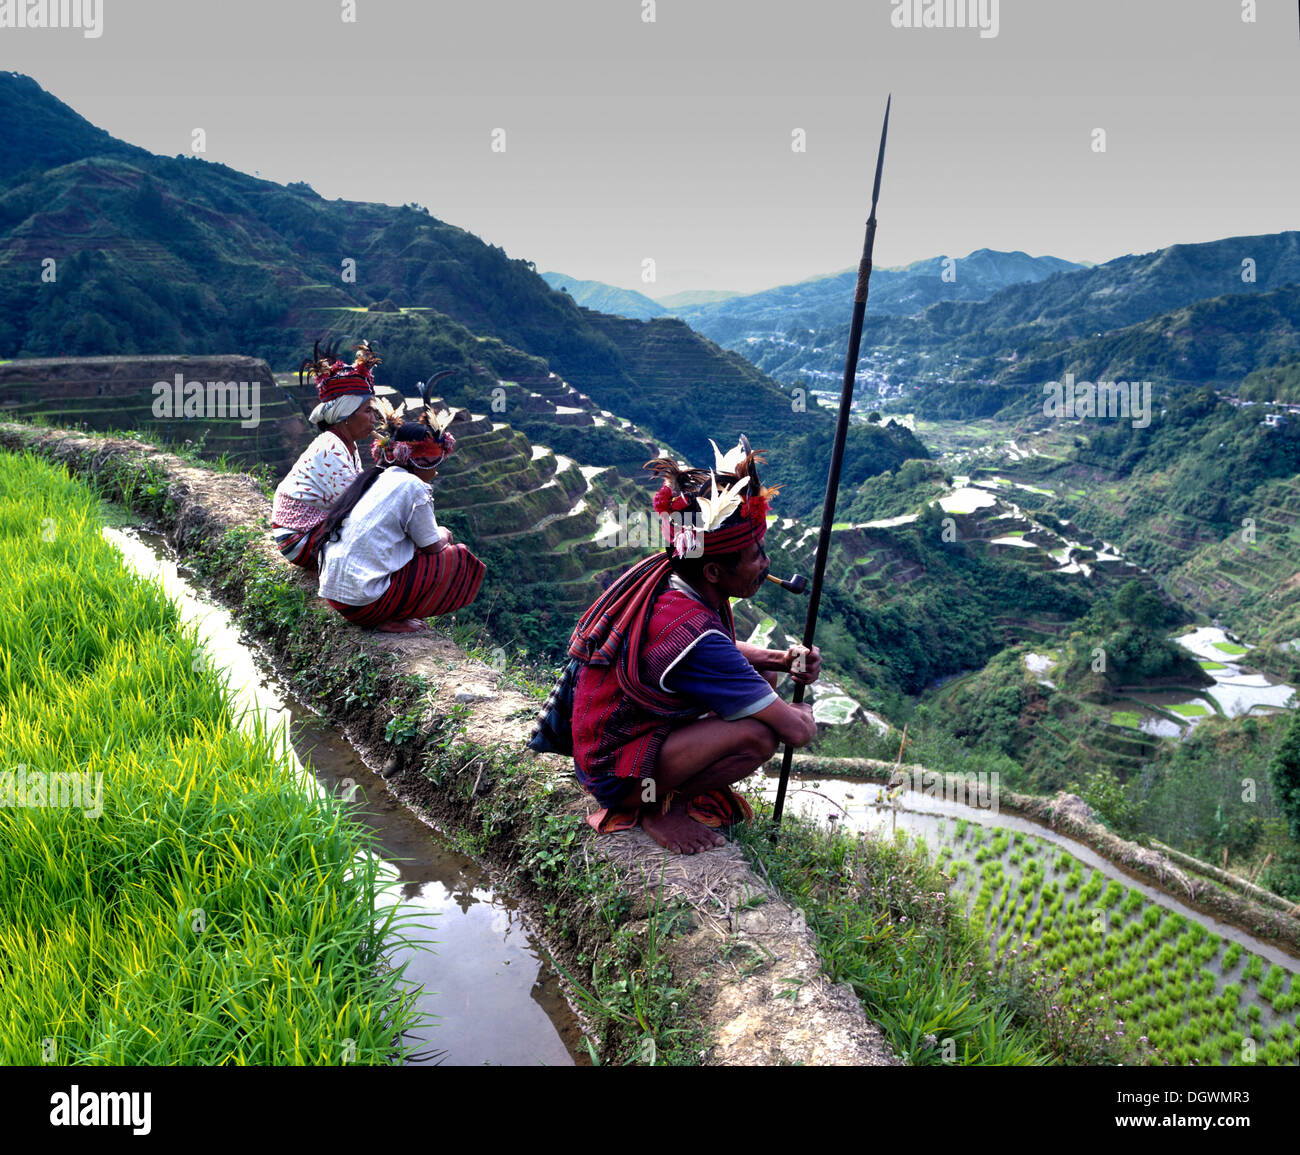 Les gens d'Ifugao, membres d'un groupe ethnique portant des costumes traditionnels, les terrasses de riz Photo Stock